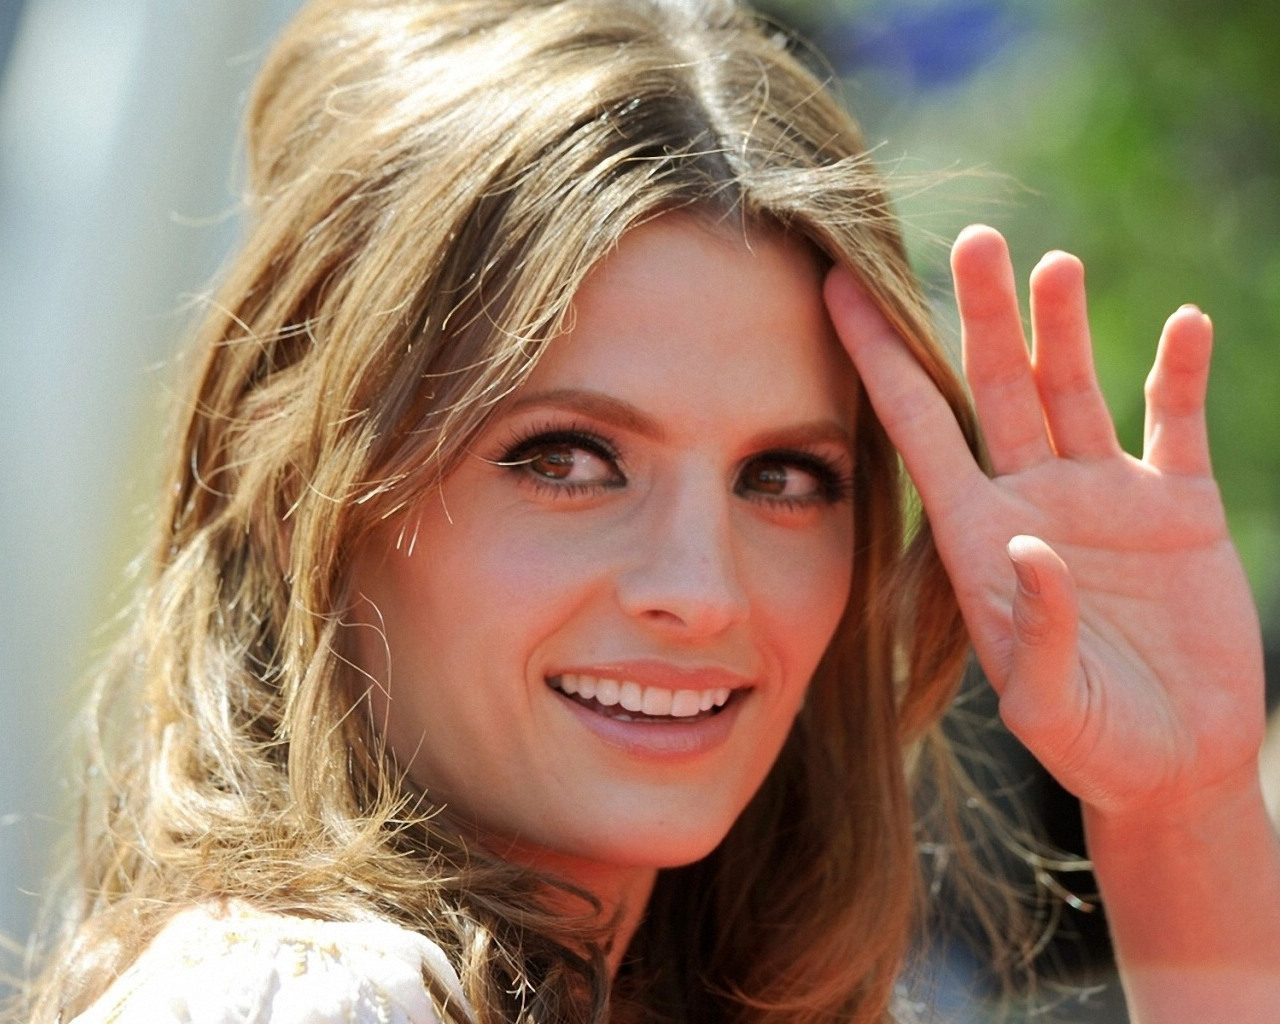 My name is Stana Katic.